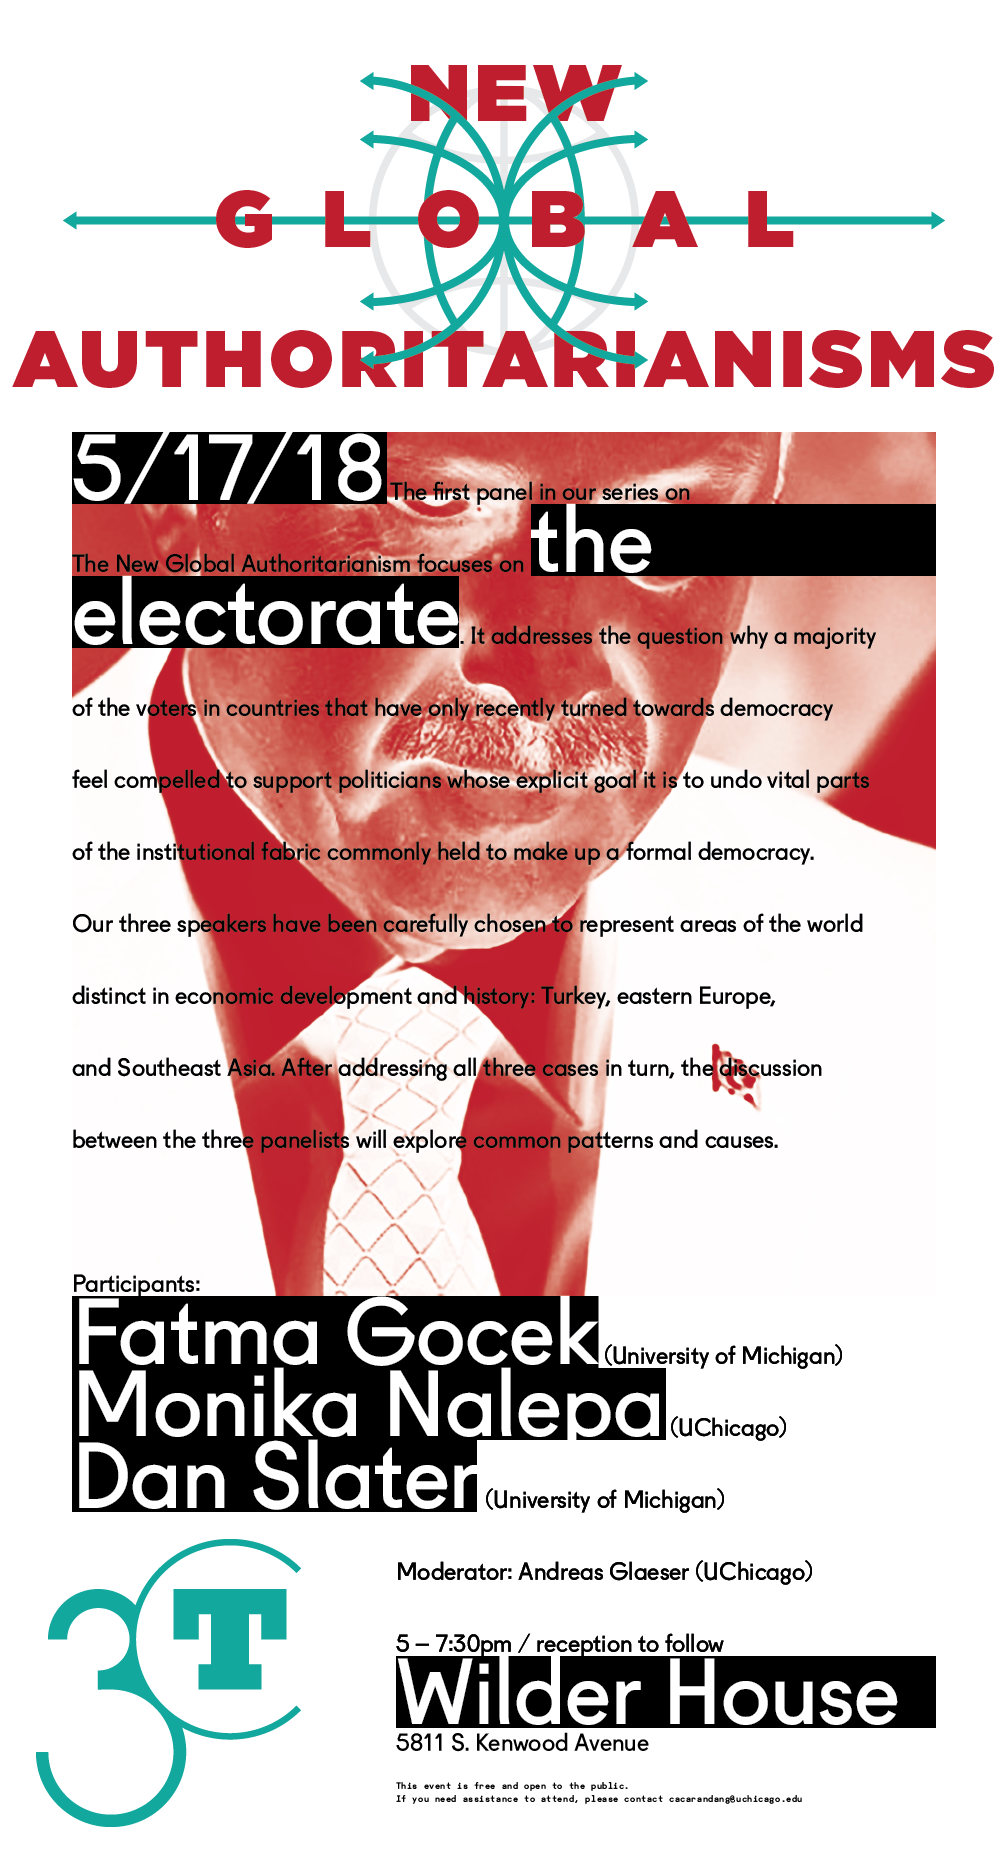 2018 electorate poster, person wearing suit overlaid with text